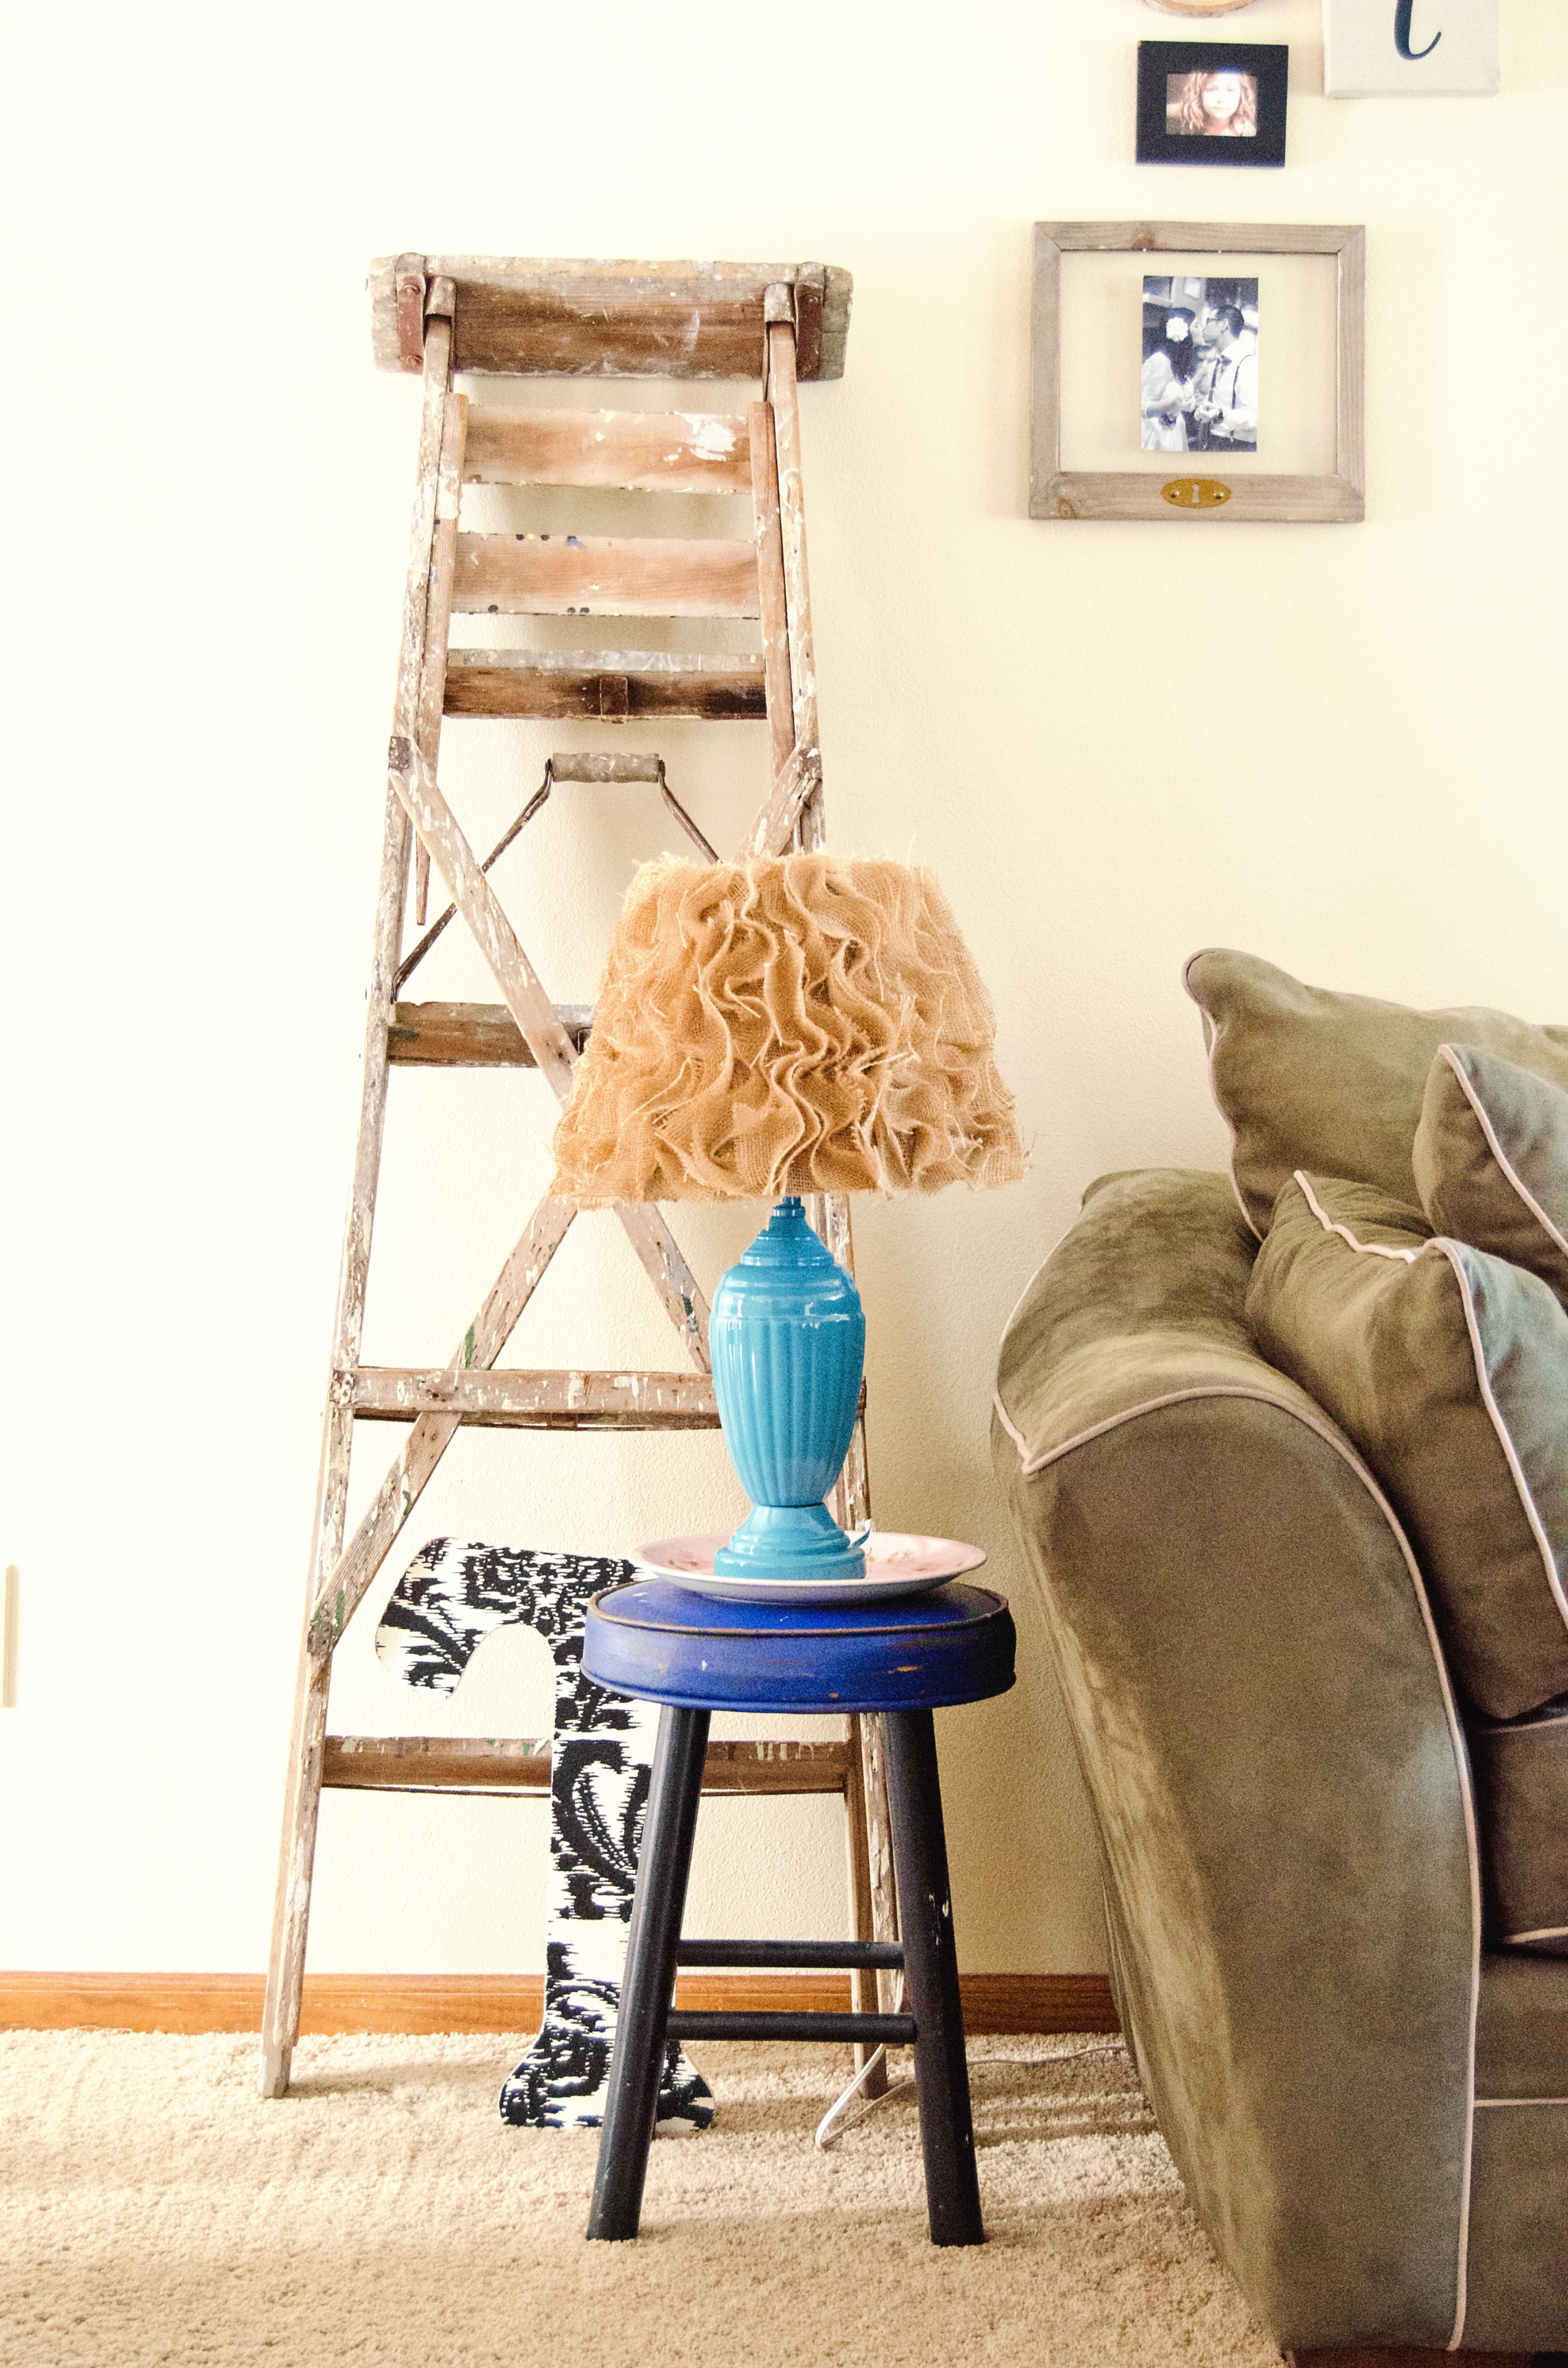 Vintage ladder as unique living room decor. | hprallandco.com